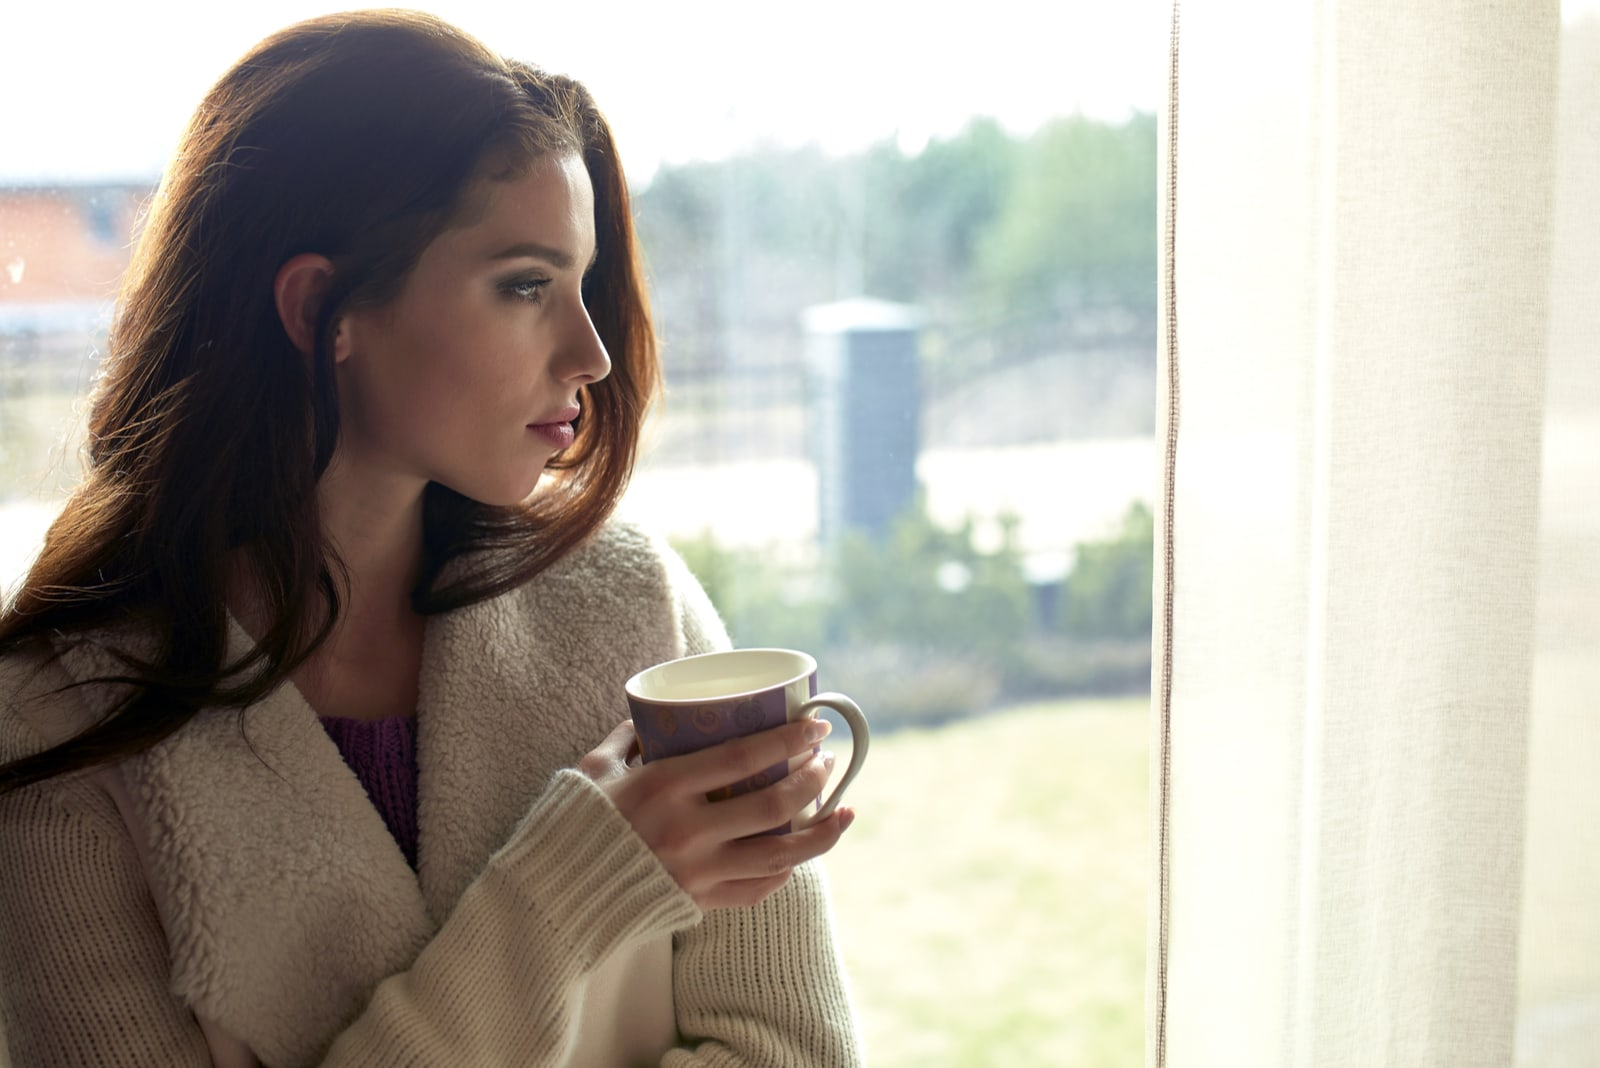 pensive woman holding a cup